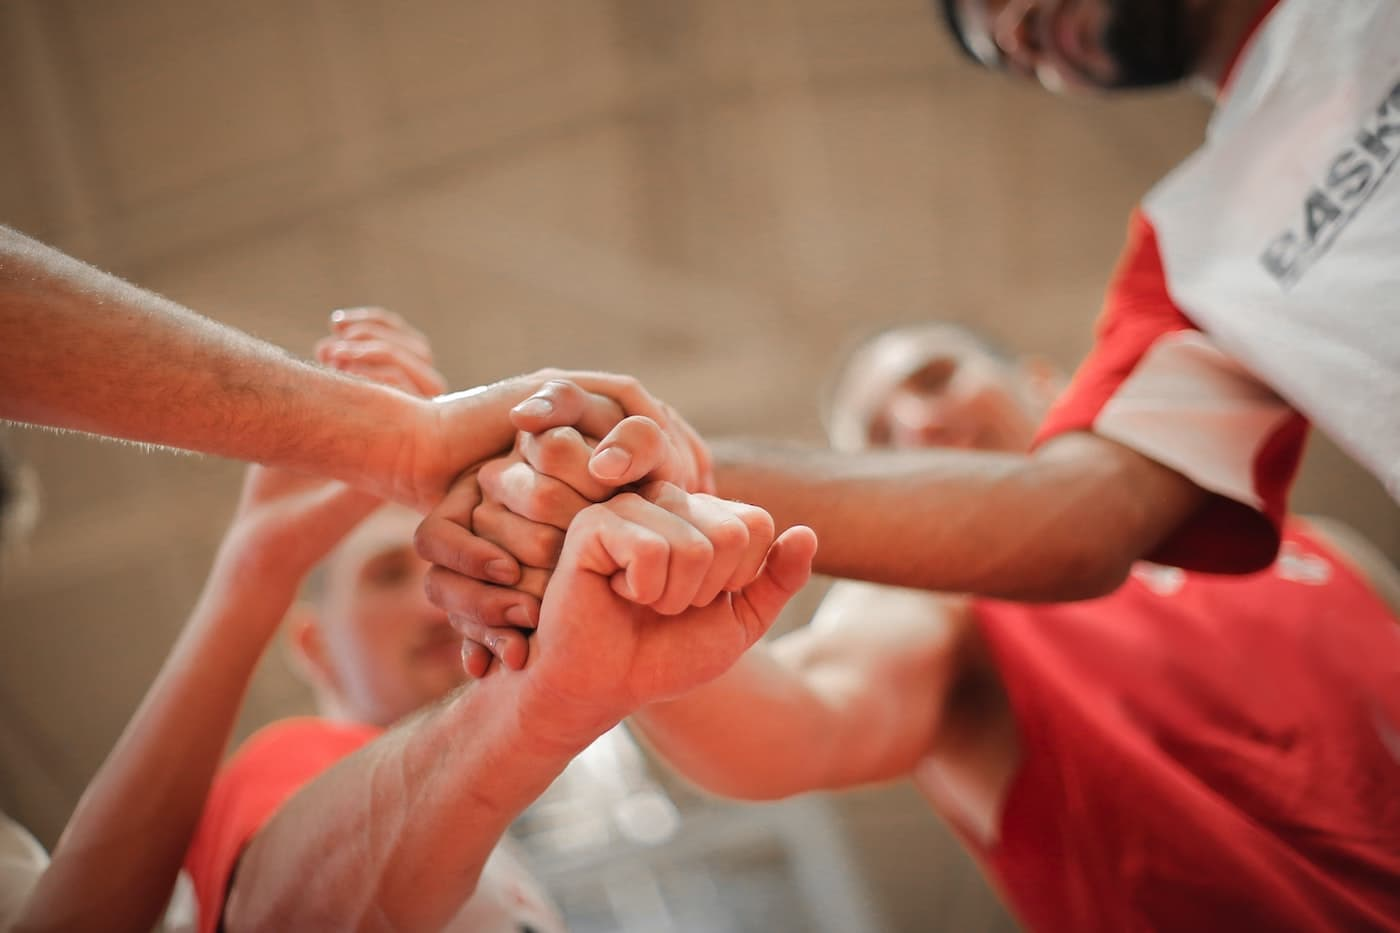 sport group come together